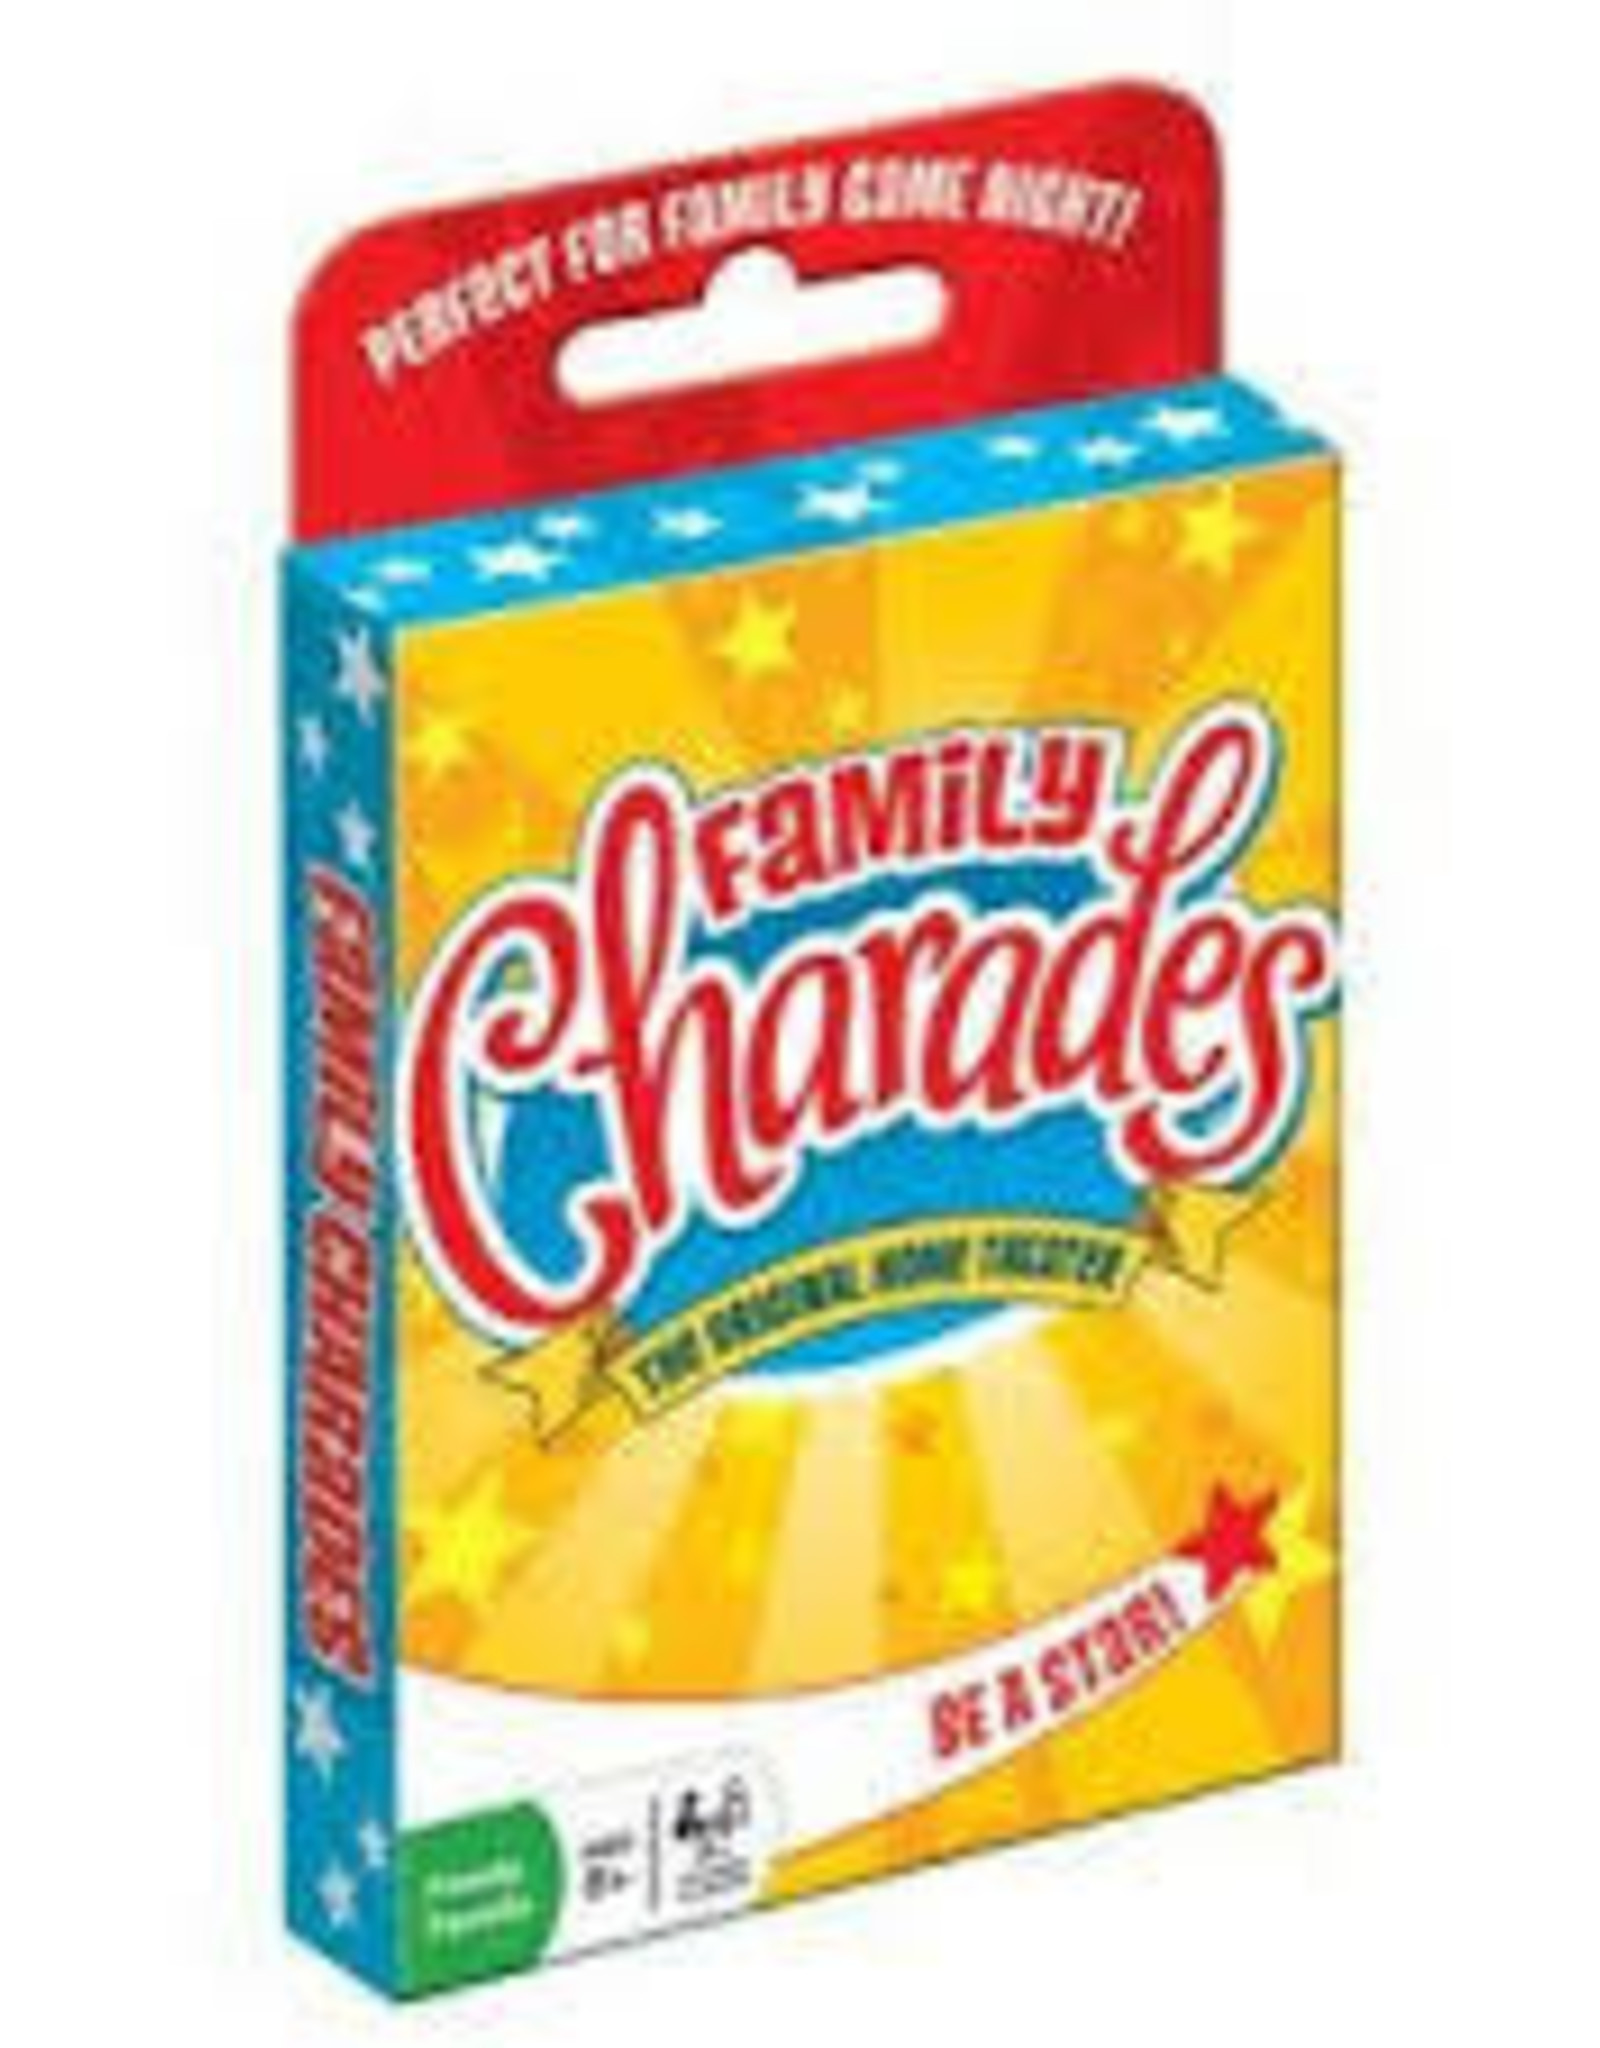 Outset Family Charades Card Game